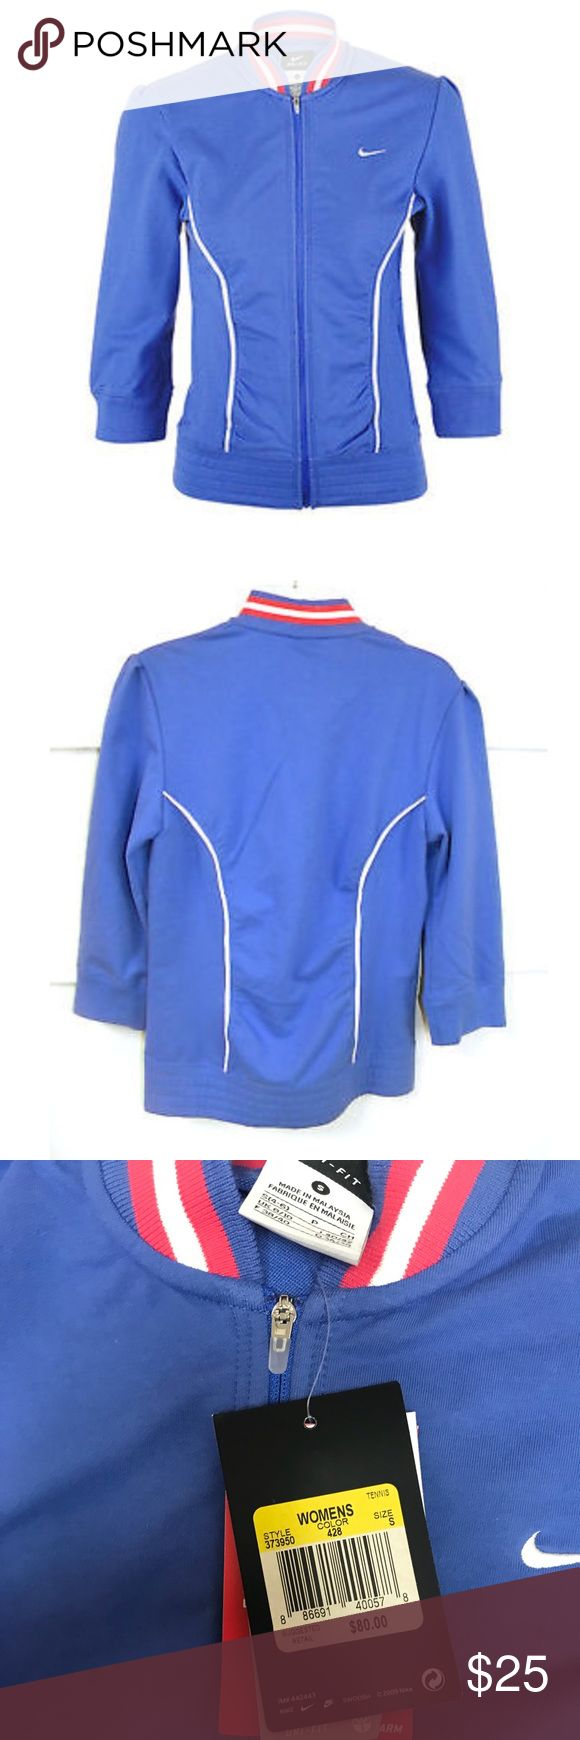 Nike Tennis Jacket Size Small Nike Break Point Tennis Jacket  3/4 Sleeve in Orion Blue with white and pink Detail  New with tags  Dri-fit fabric to wick sweat away and help keep you dry and comfortable Striped rib collar  Mesh piping with ruching at front and back  Size zip pockets Nike Jackets & Coats